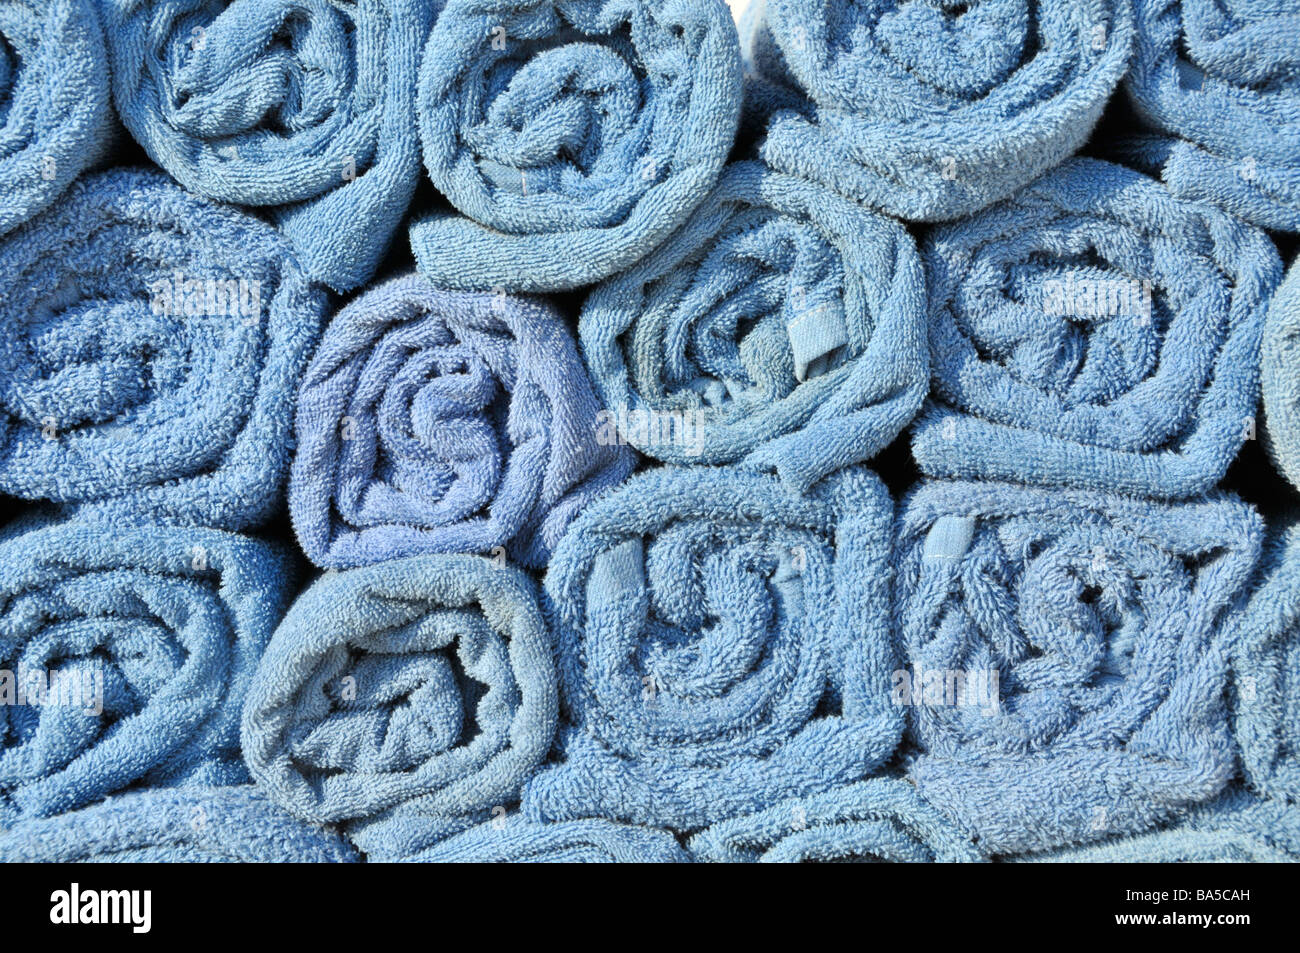 Background abstract  close up end view of blue rolled up towels in stacks beside pool awaiting use by cruise ship - Stock Image